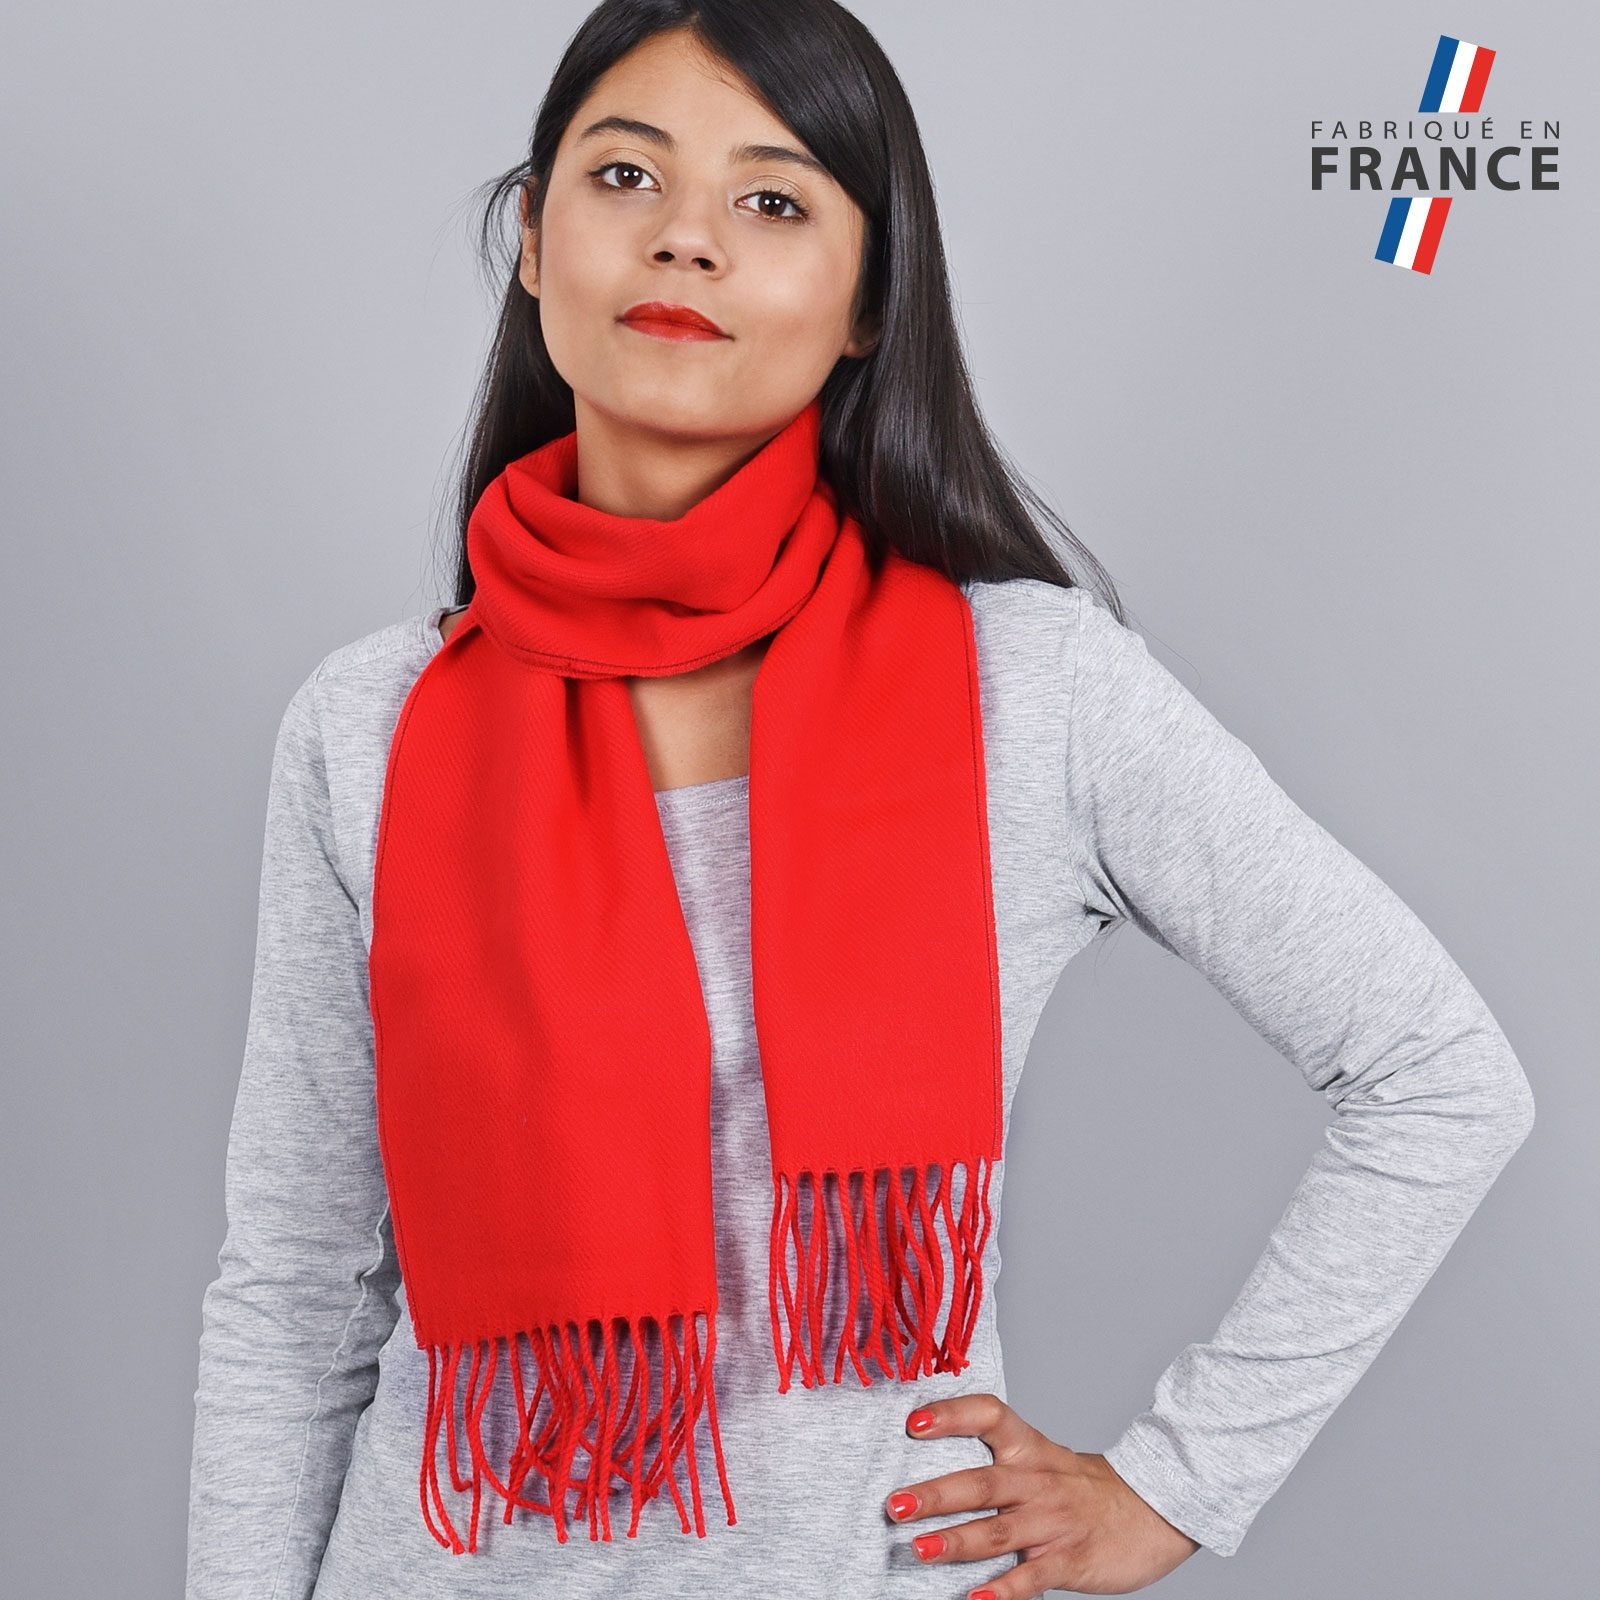 http://lookbook.allee-du-foulard.fr/wp-content/uploads/2018/11/AT-03242-VF16-LB_FR-echarpe-franges-rouge-femme-fabrication-francaise-1600x1600.jpg